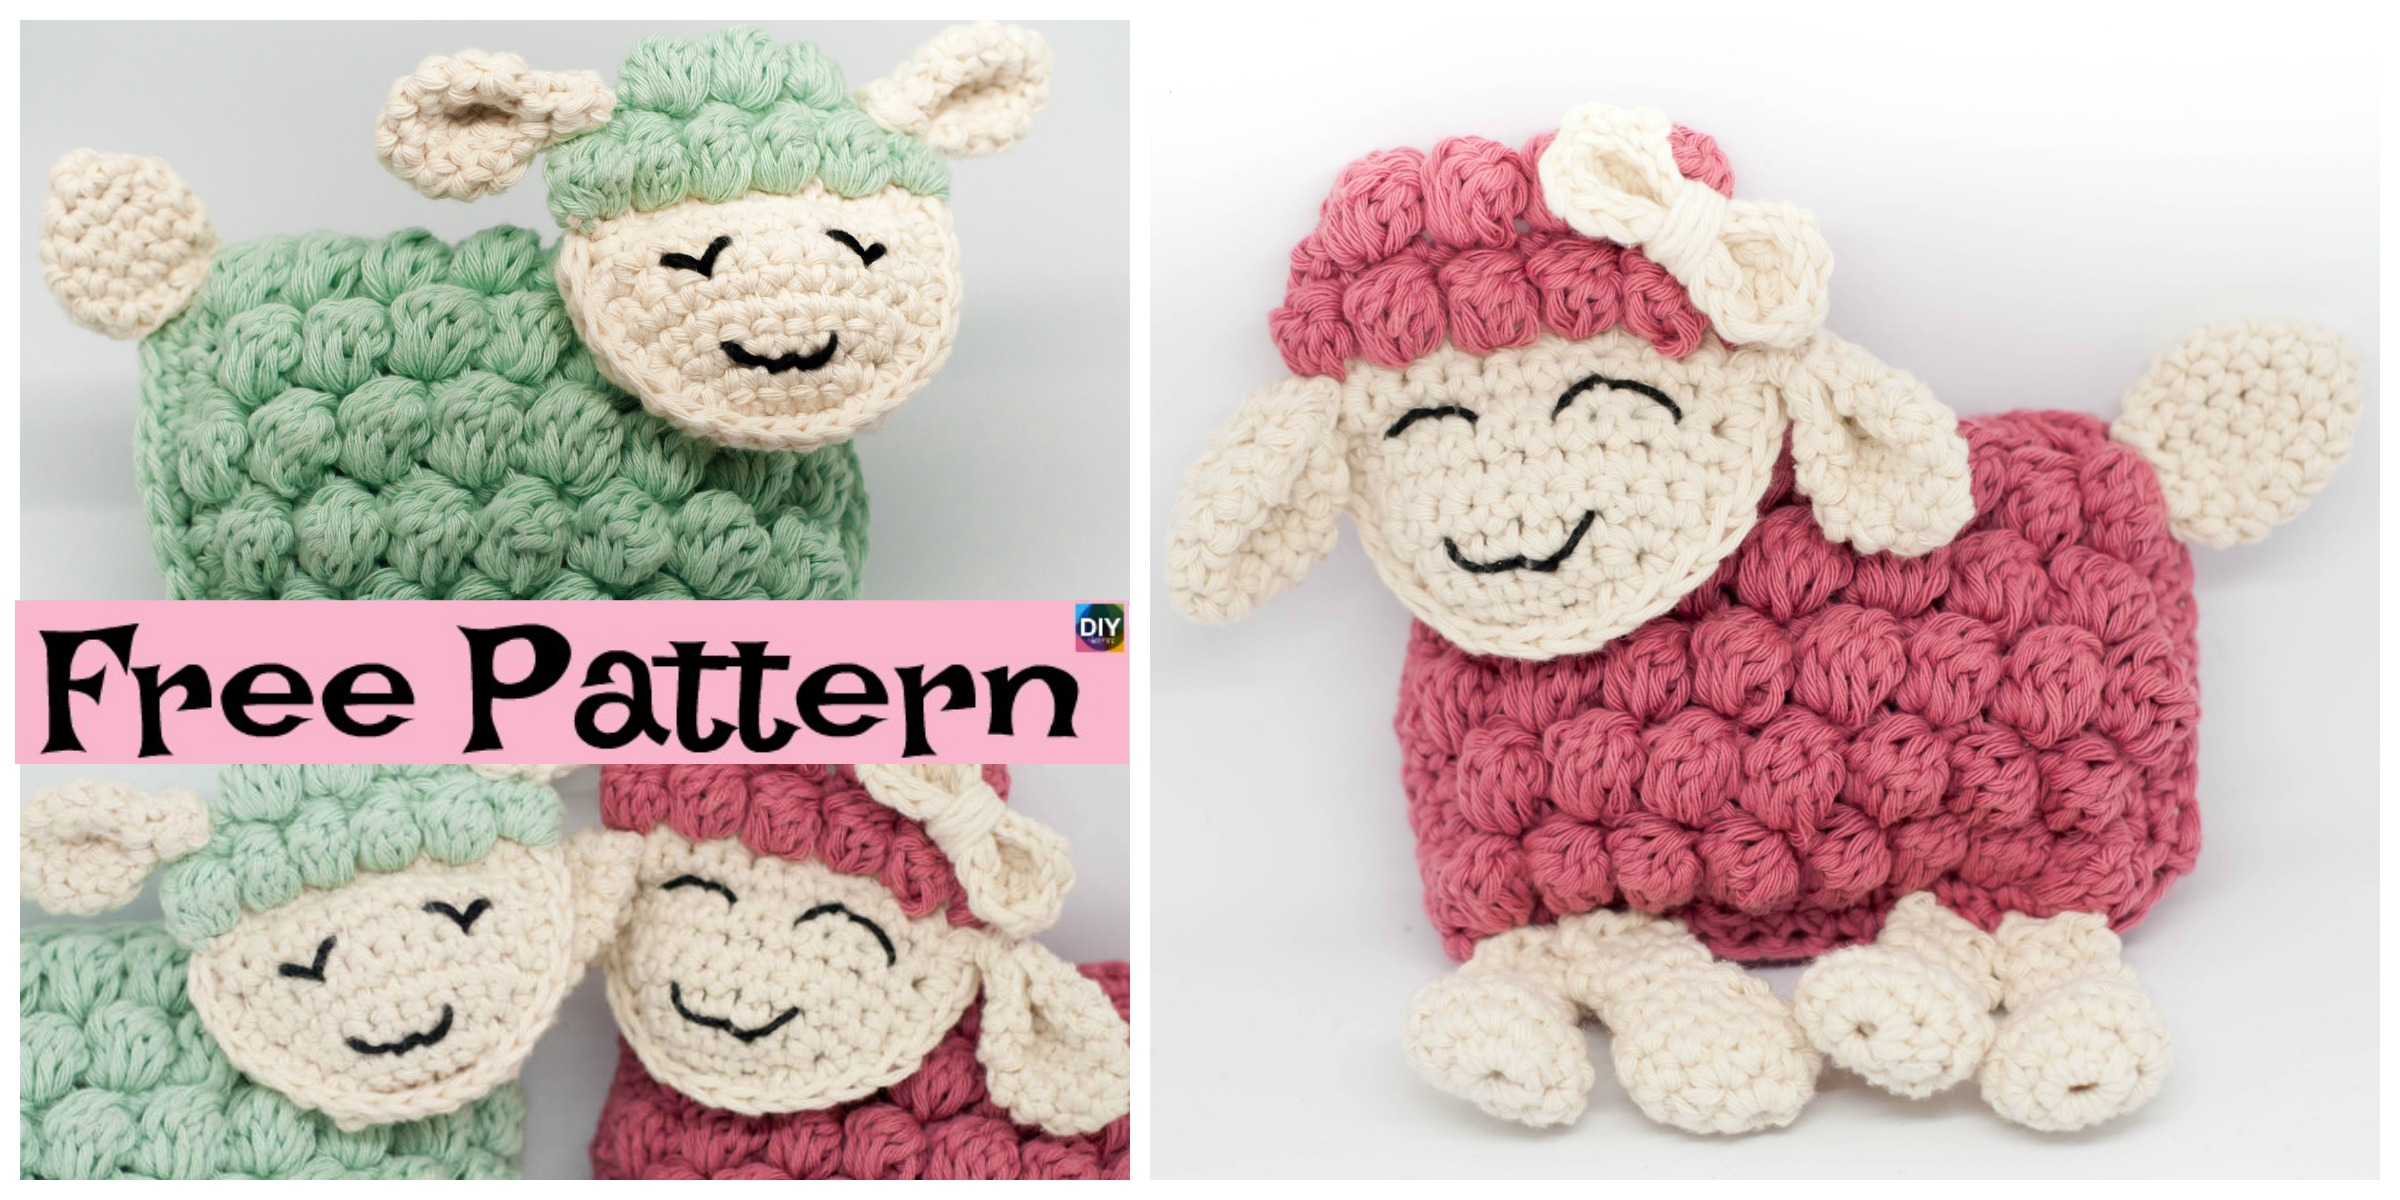 Cute Crocheted Ragdoll – Free Pattern